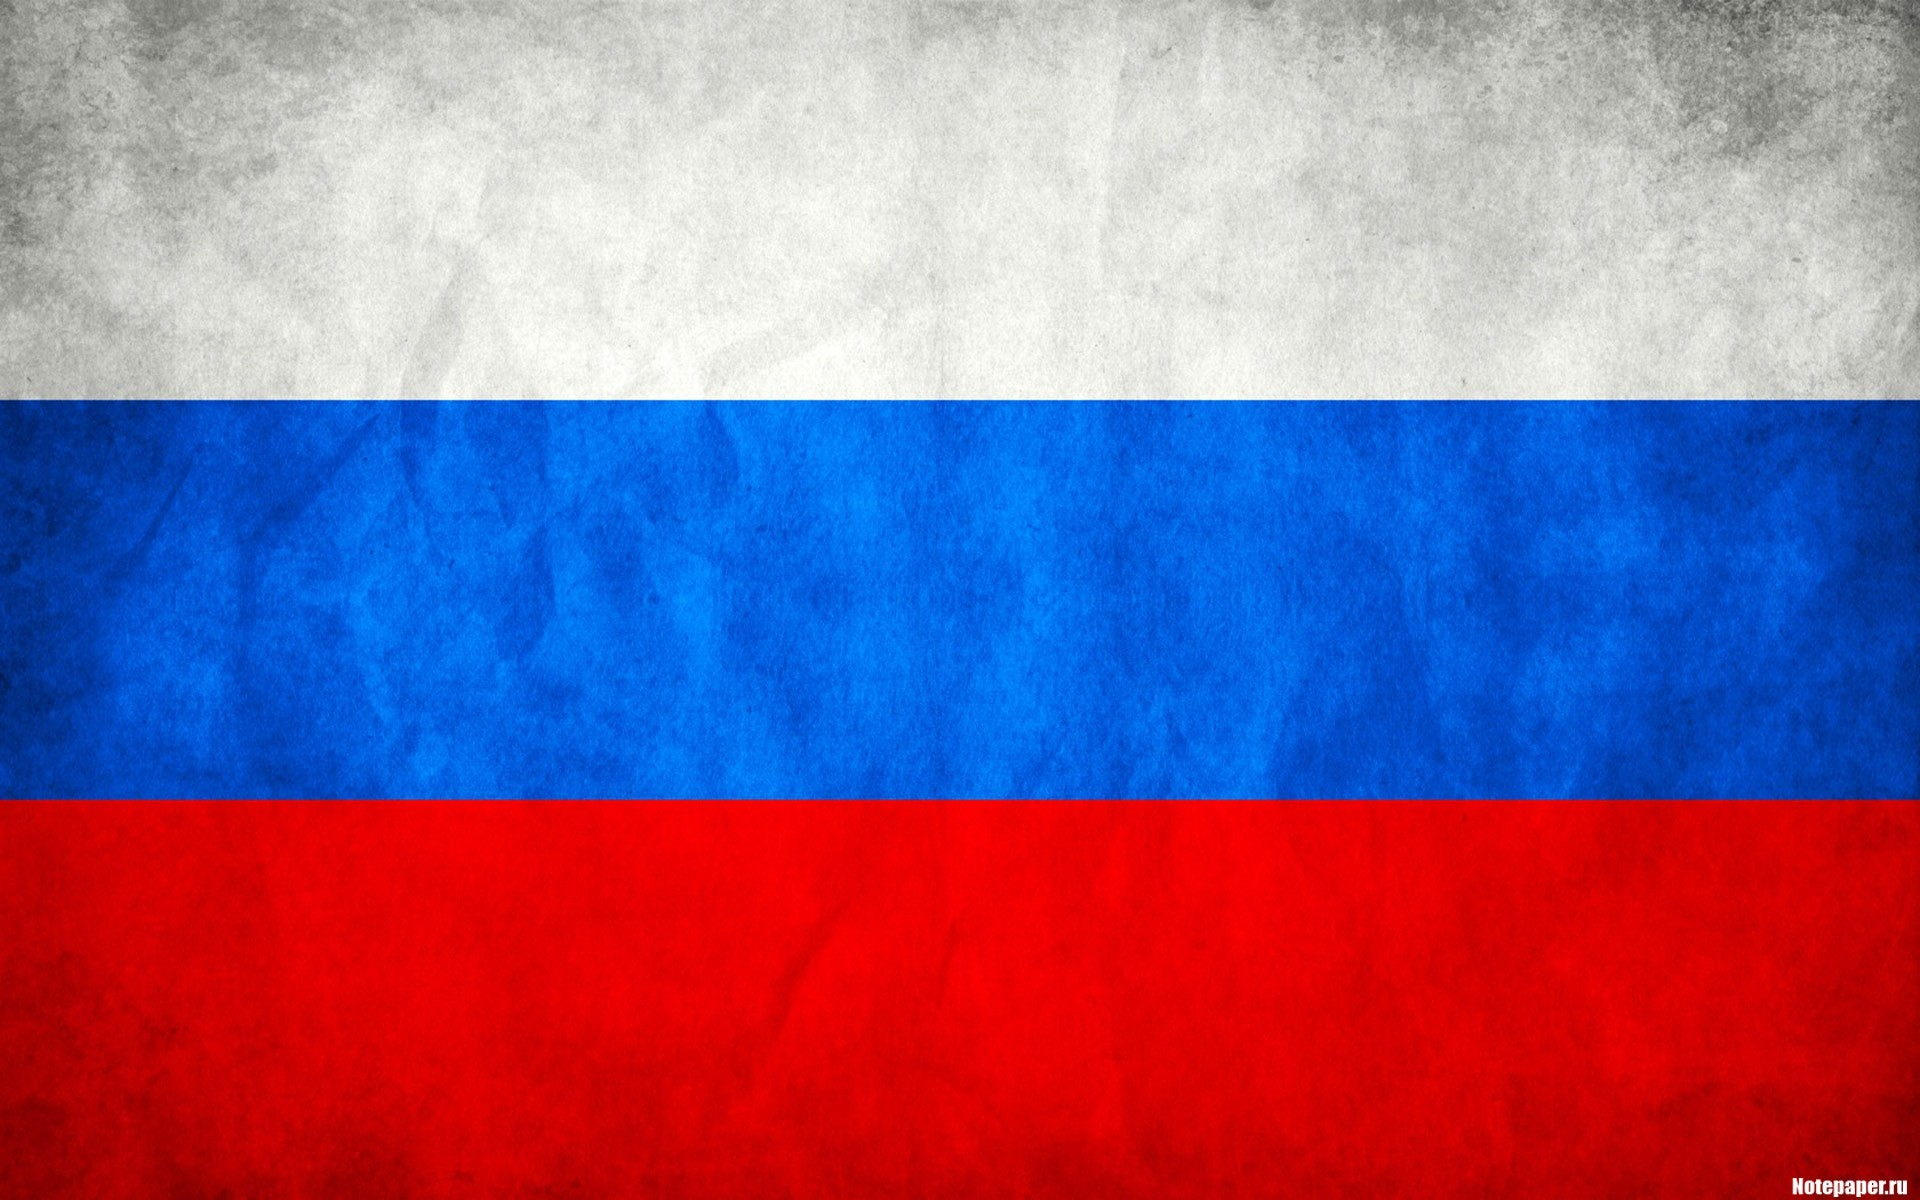 Blue Red White Russia Flags Russian Federation Wallpaper